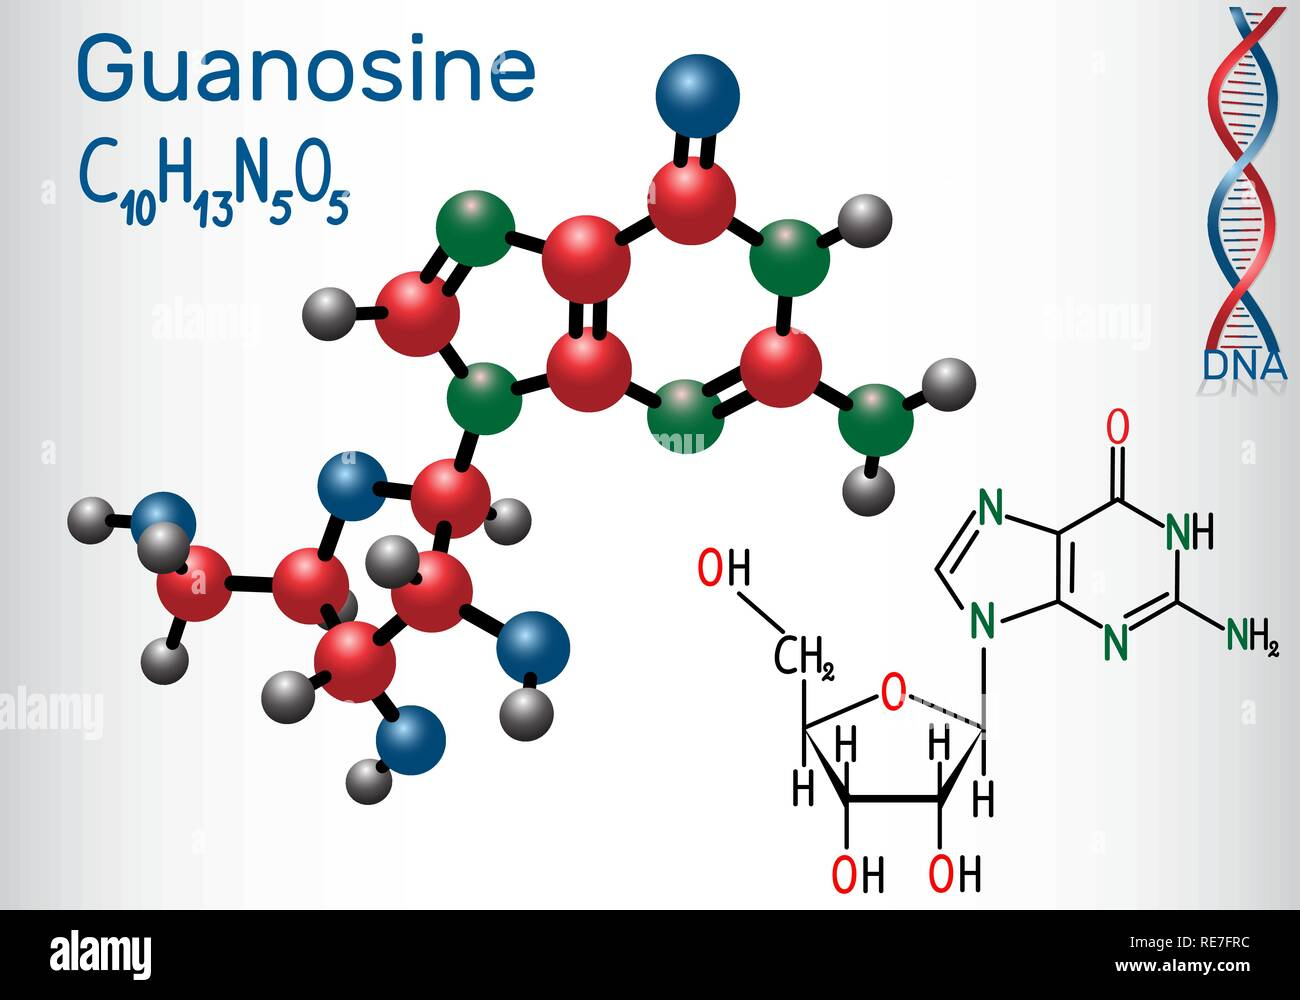 Guanosine - purine nucleoside molecule, is important part of GMP, GDP, cGMP , GTP, RNA, DNA. Structural chemical formula and molecule model. Vector il - Stock Image